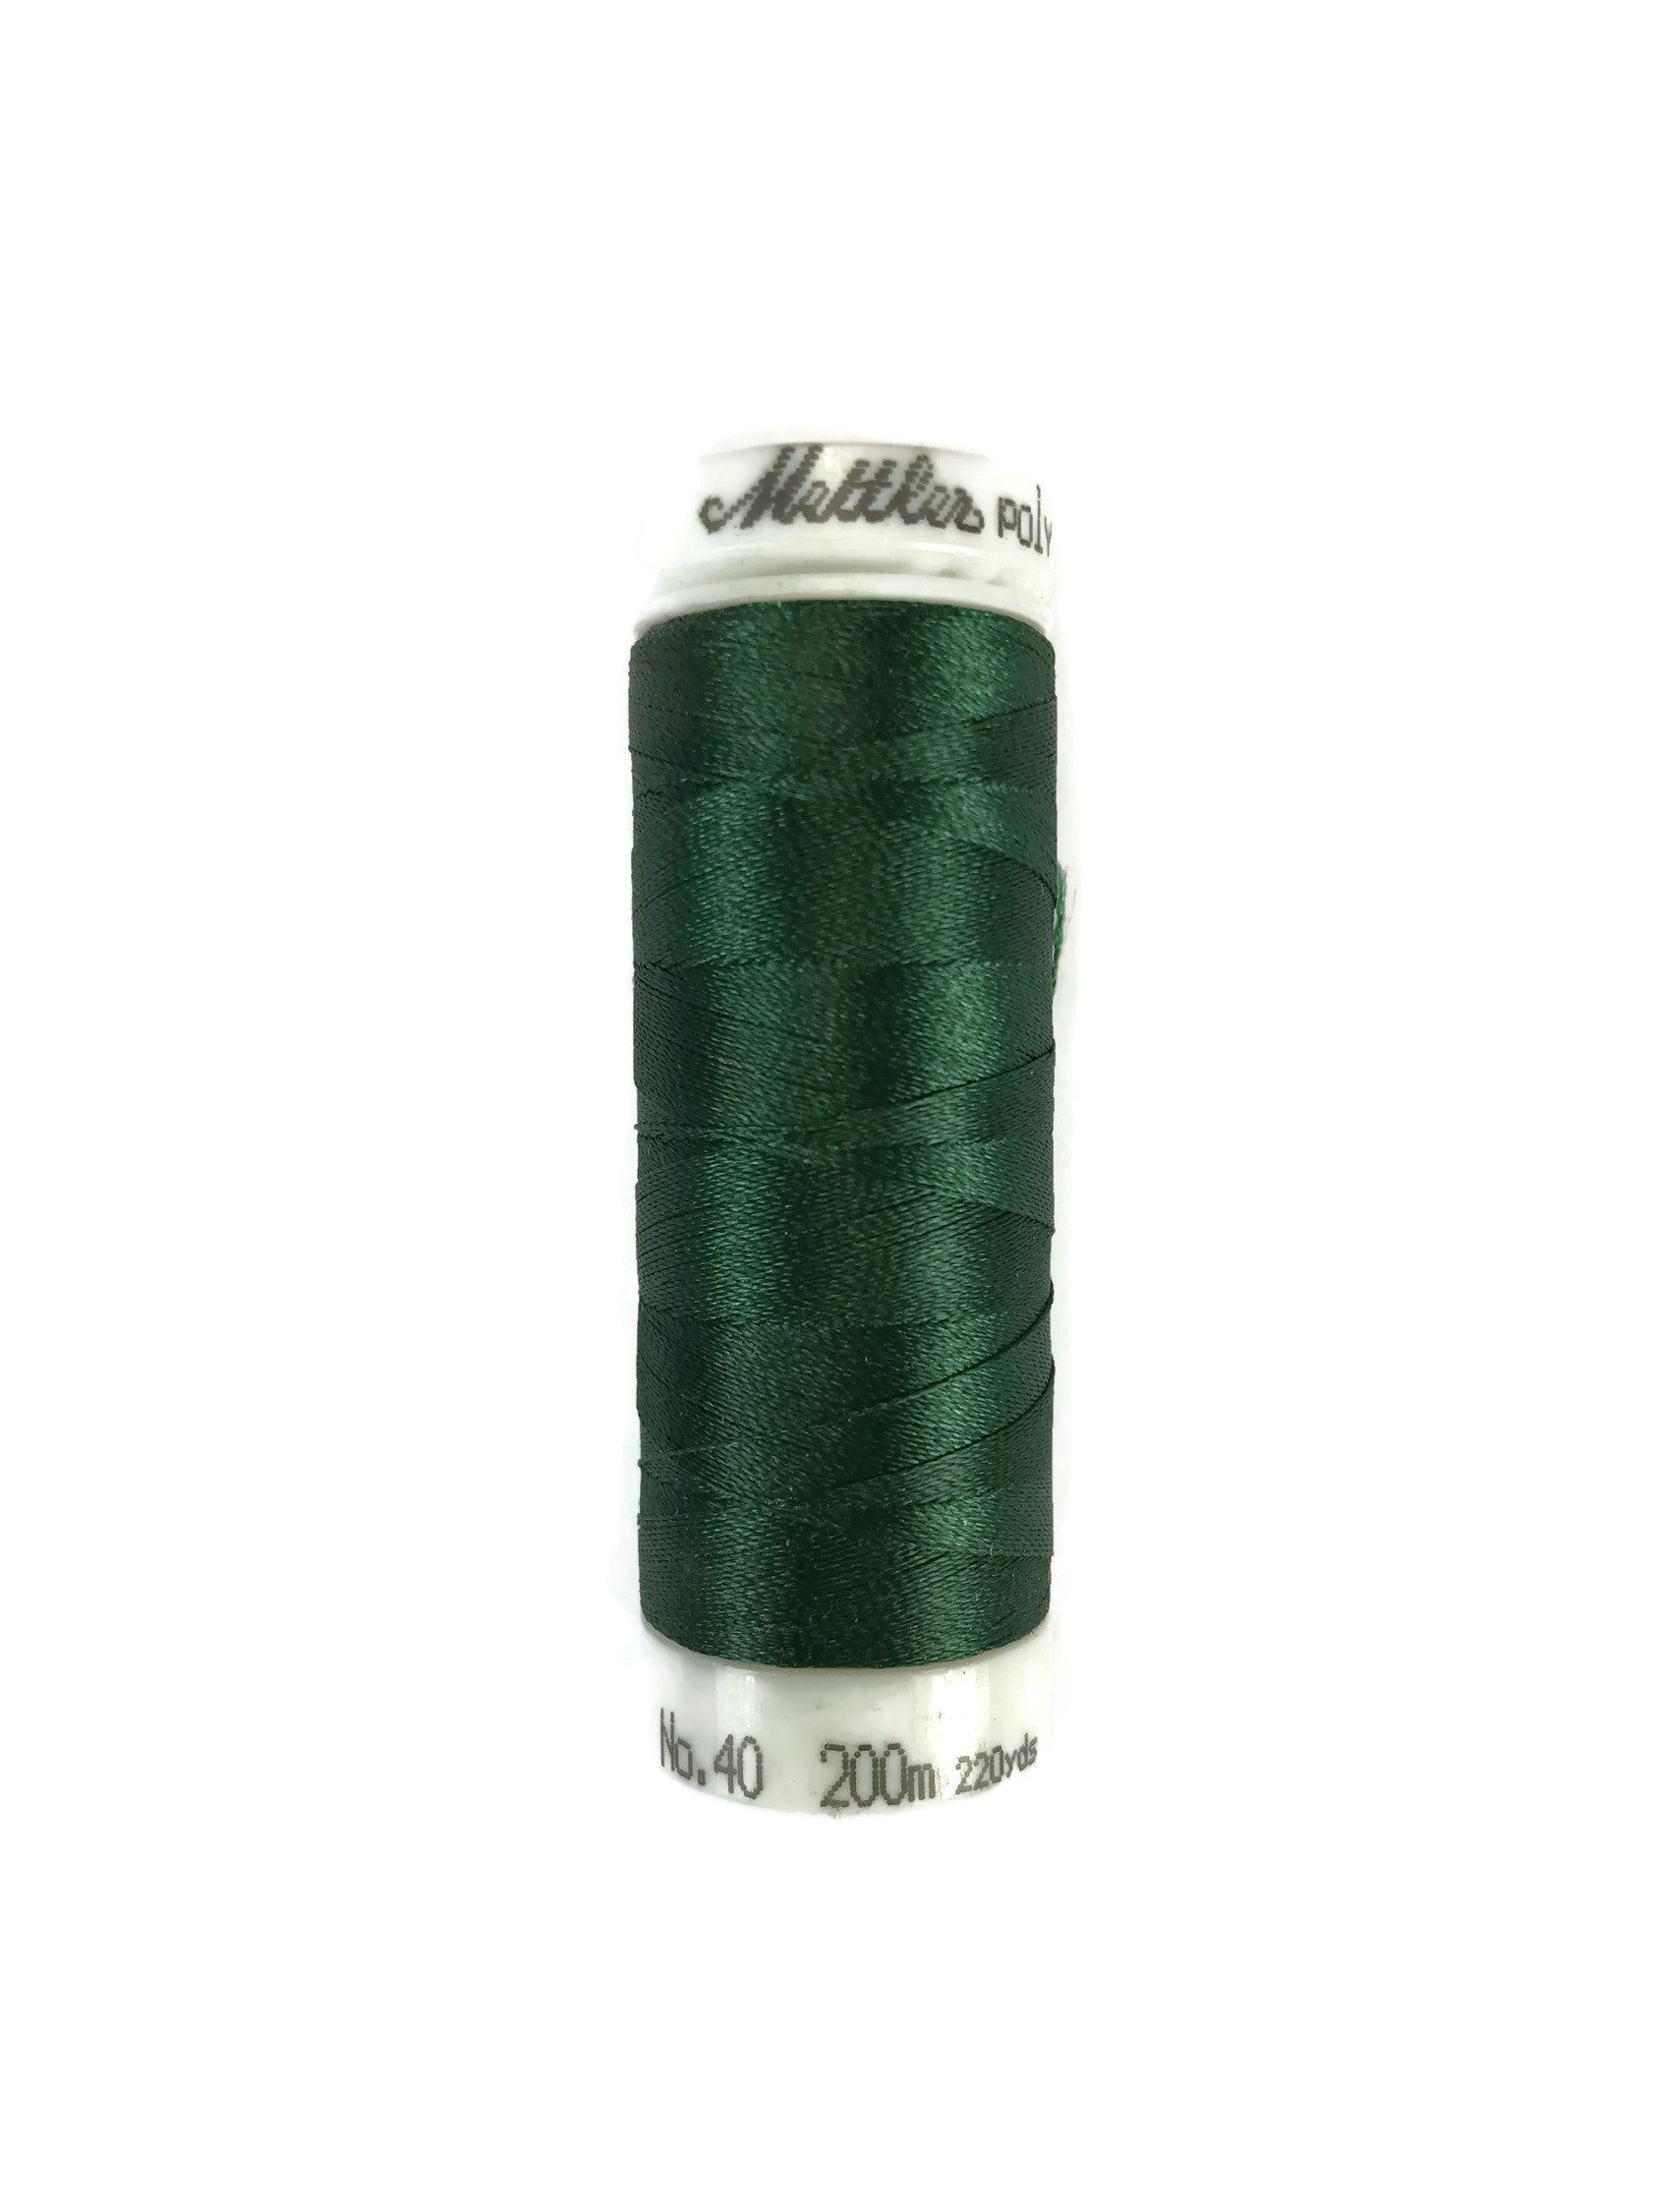 Mettler Poly Sheen Thread Colour 5324 Bright Green